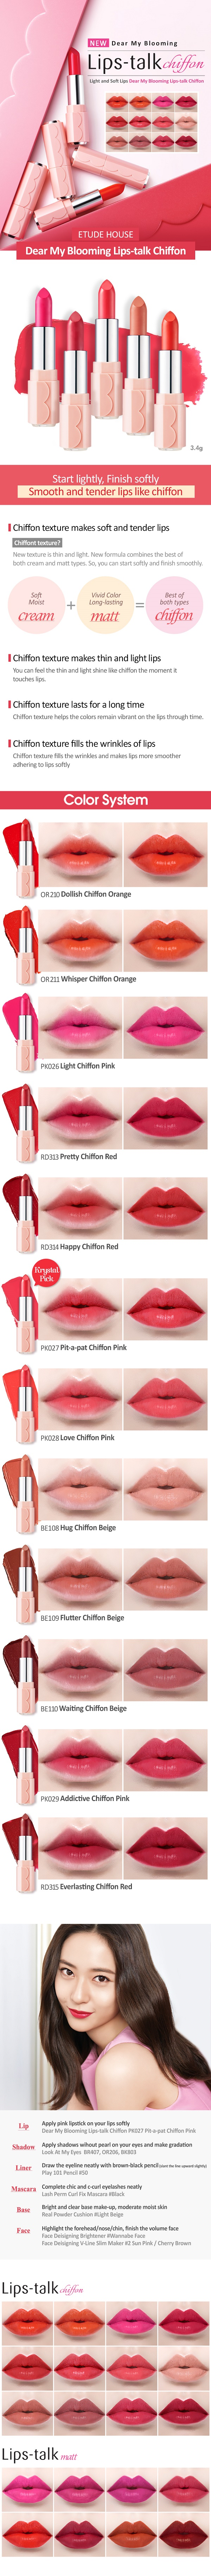 [Etude house]Dear Blooming Lips-Talk Chiffon #PK026 3.4g